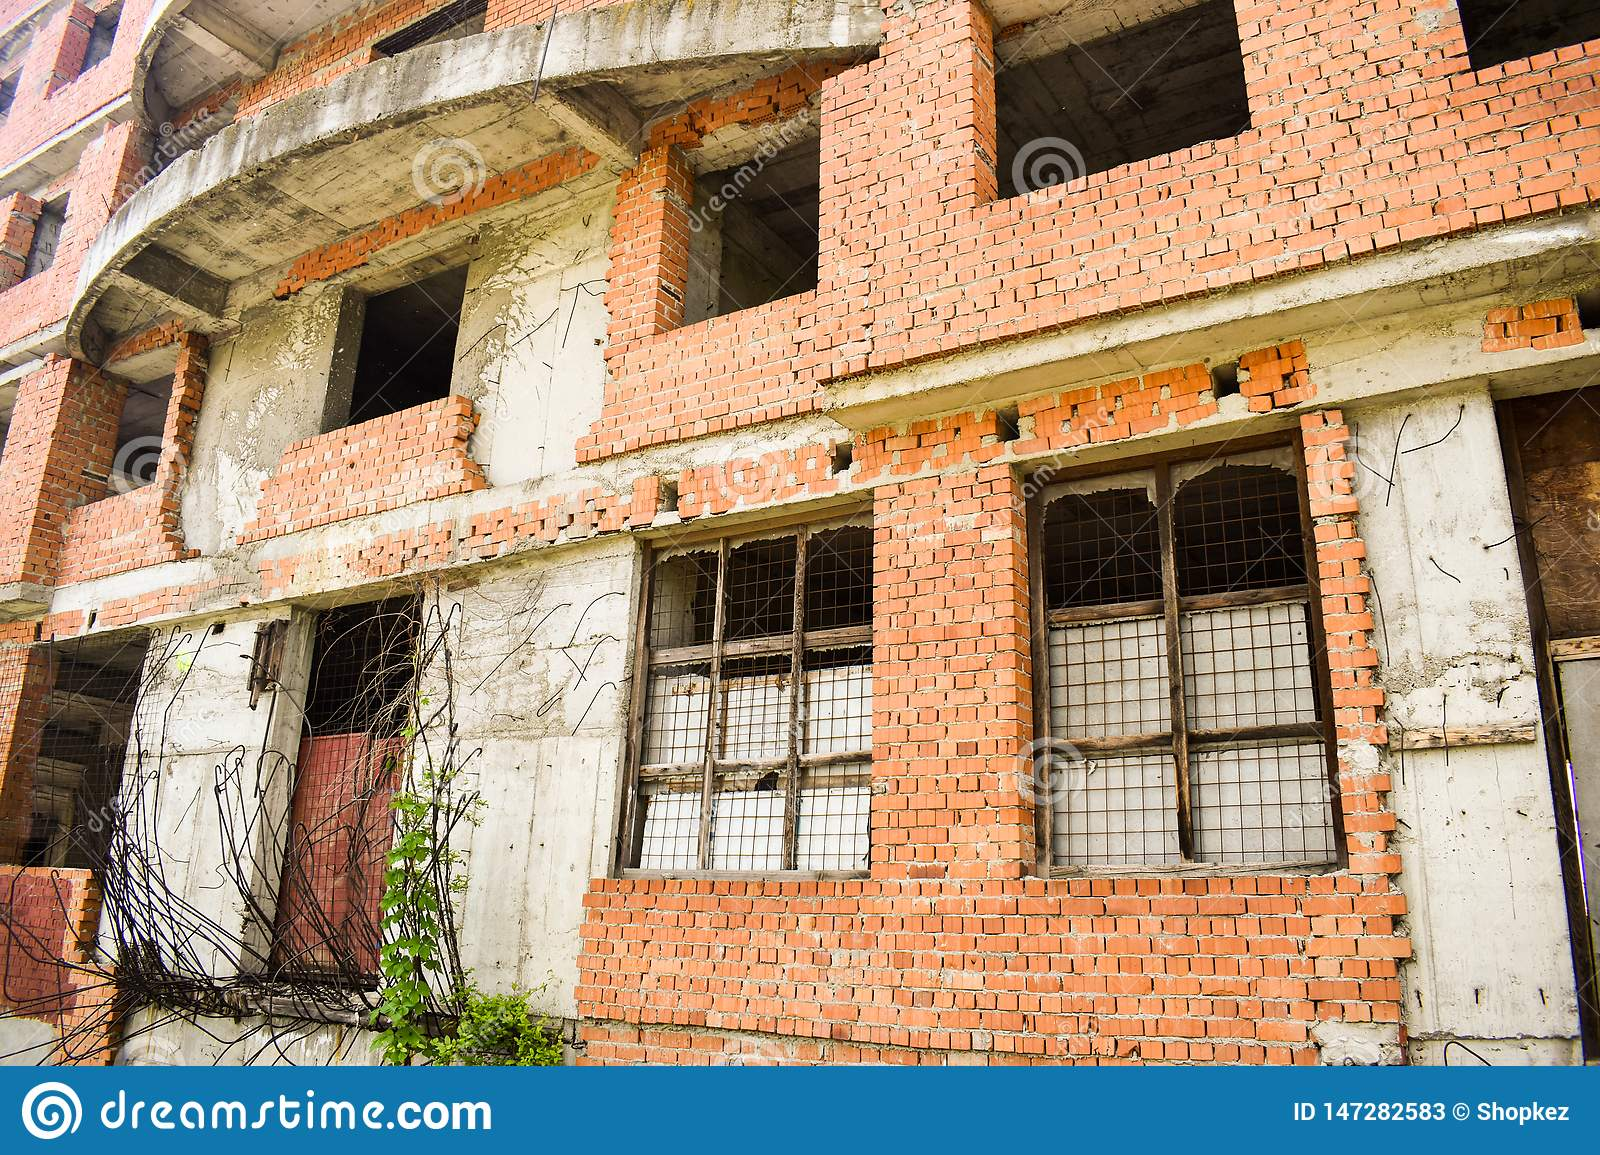 Unfinished building in the downtown. Abandoned building project with red bricks and wild vegetation